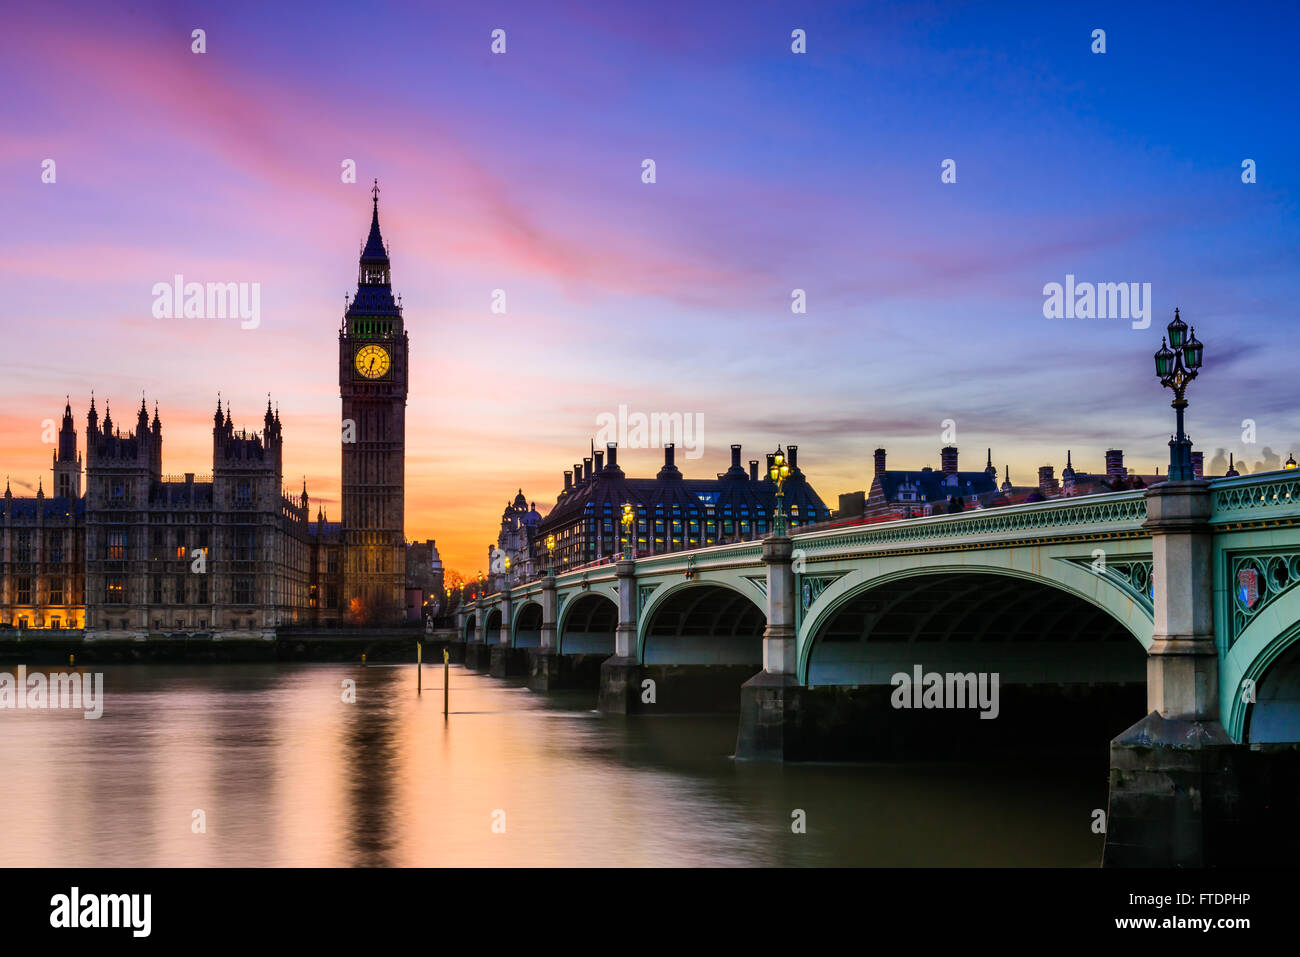 Beautiful Sunset over the London skyline and the House of Parliament on Friday, 28th March, 2016. London, United - Stock Image